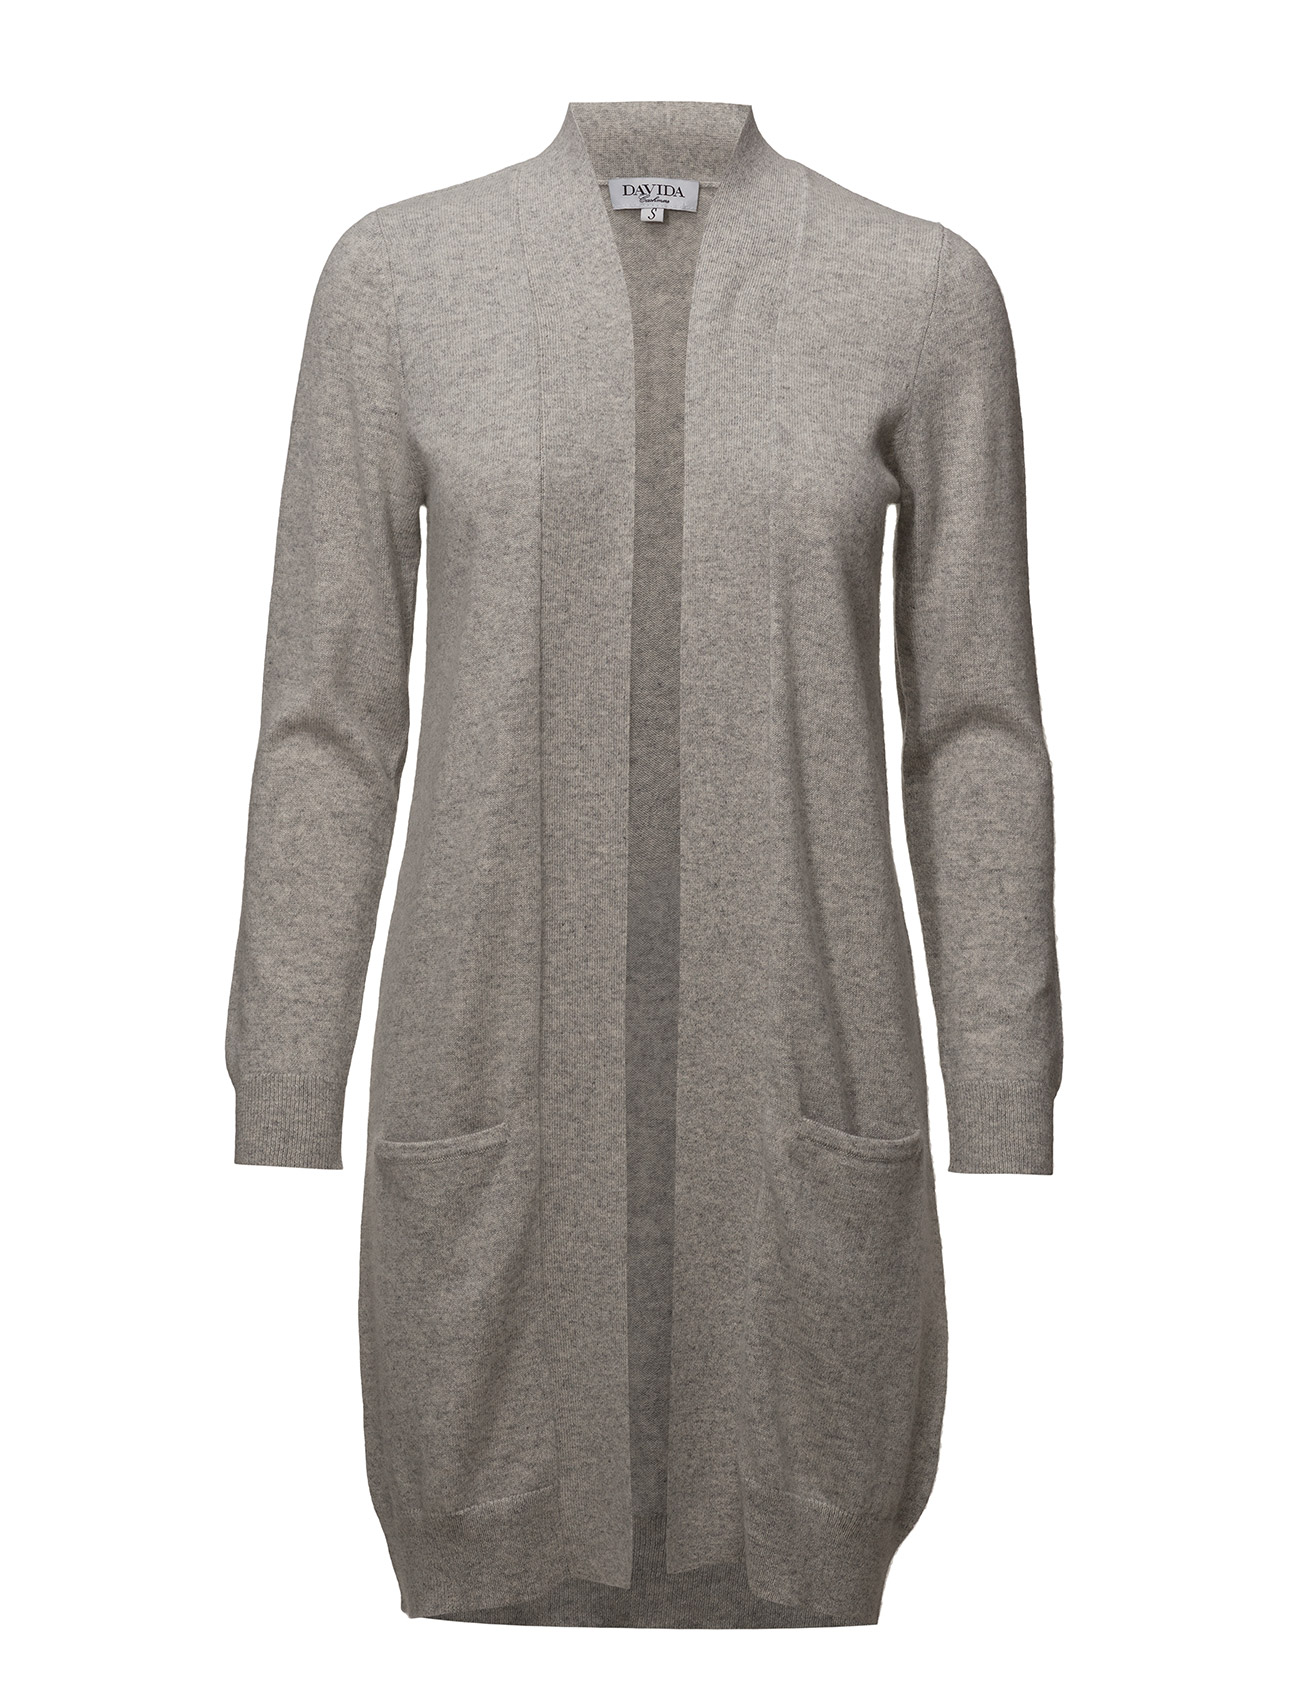 Davida Cashmere Pocket Long Cardigan - LIGHT GREY